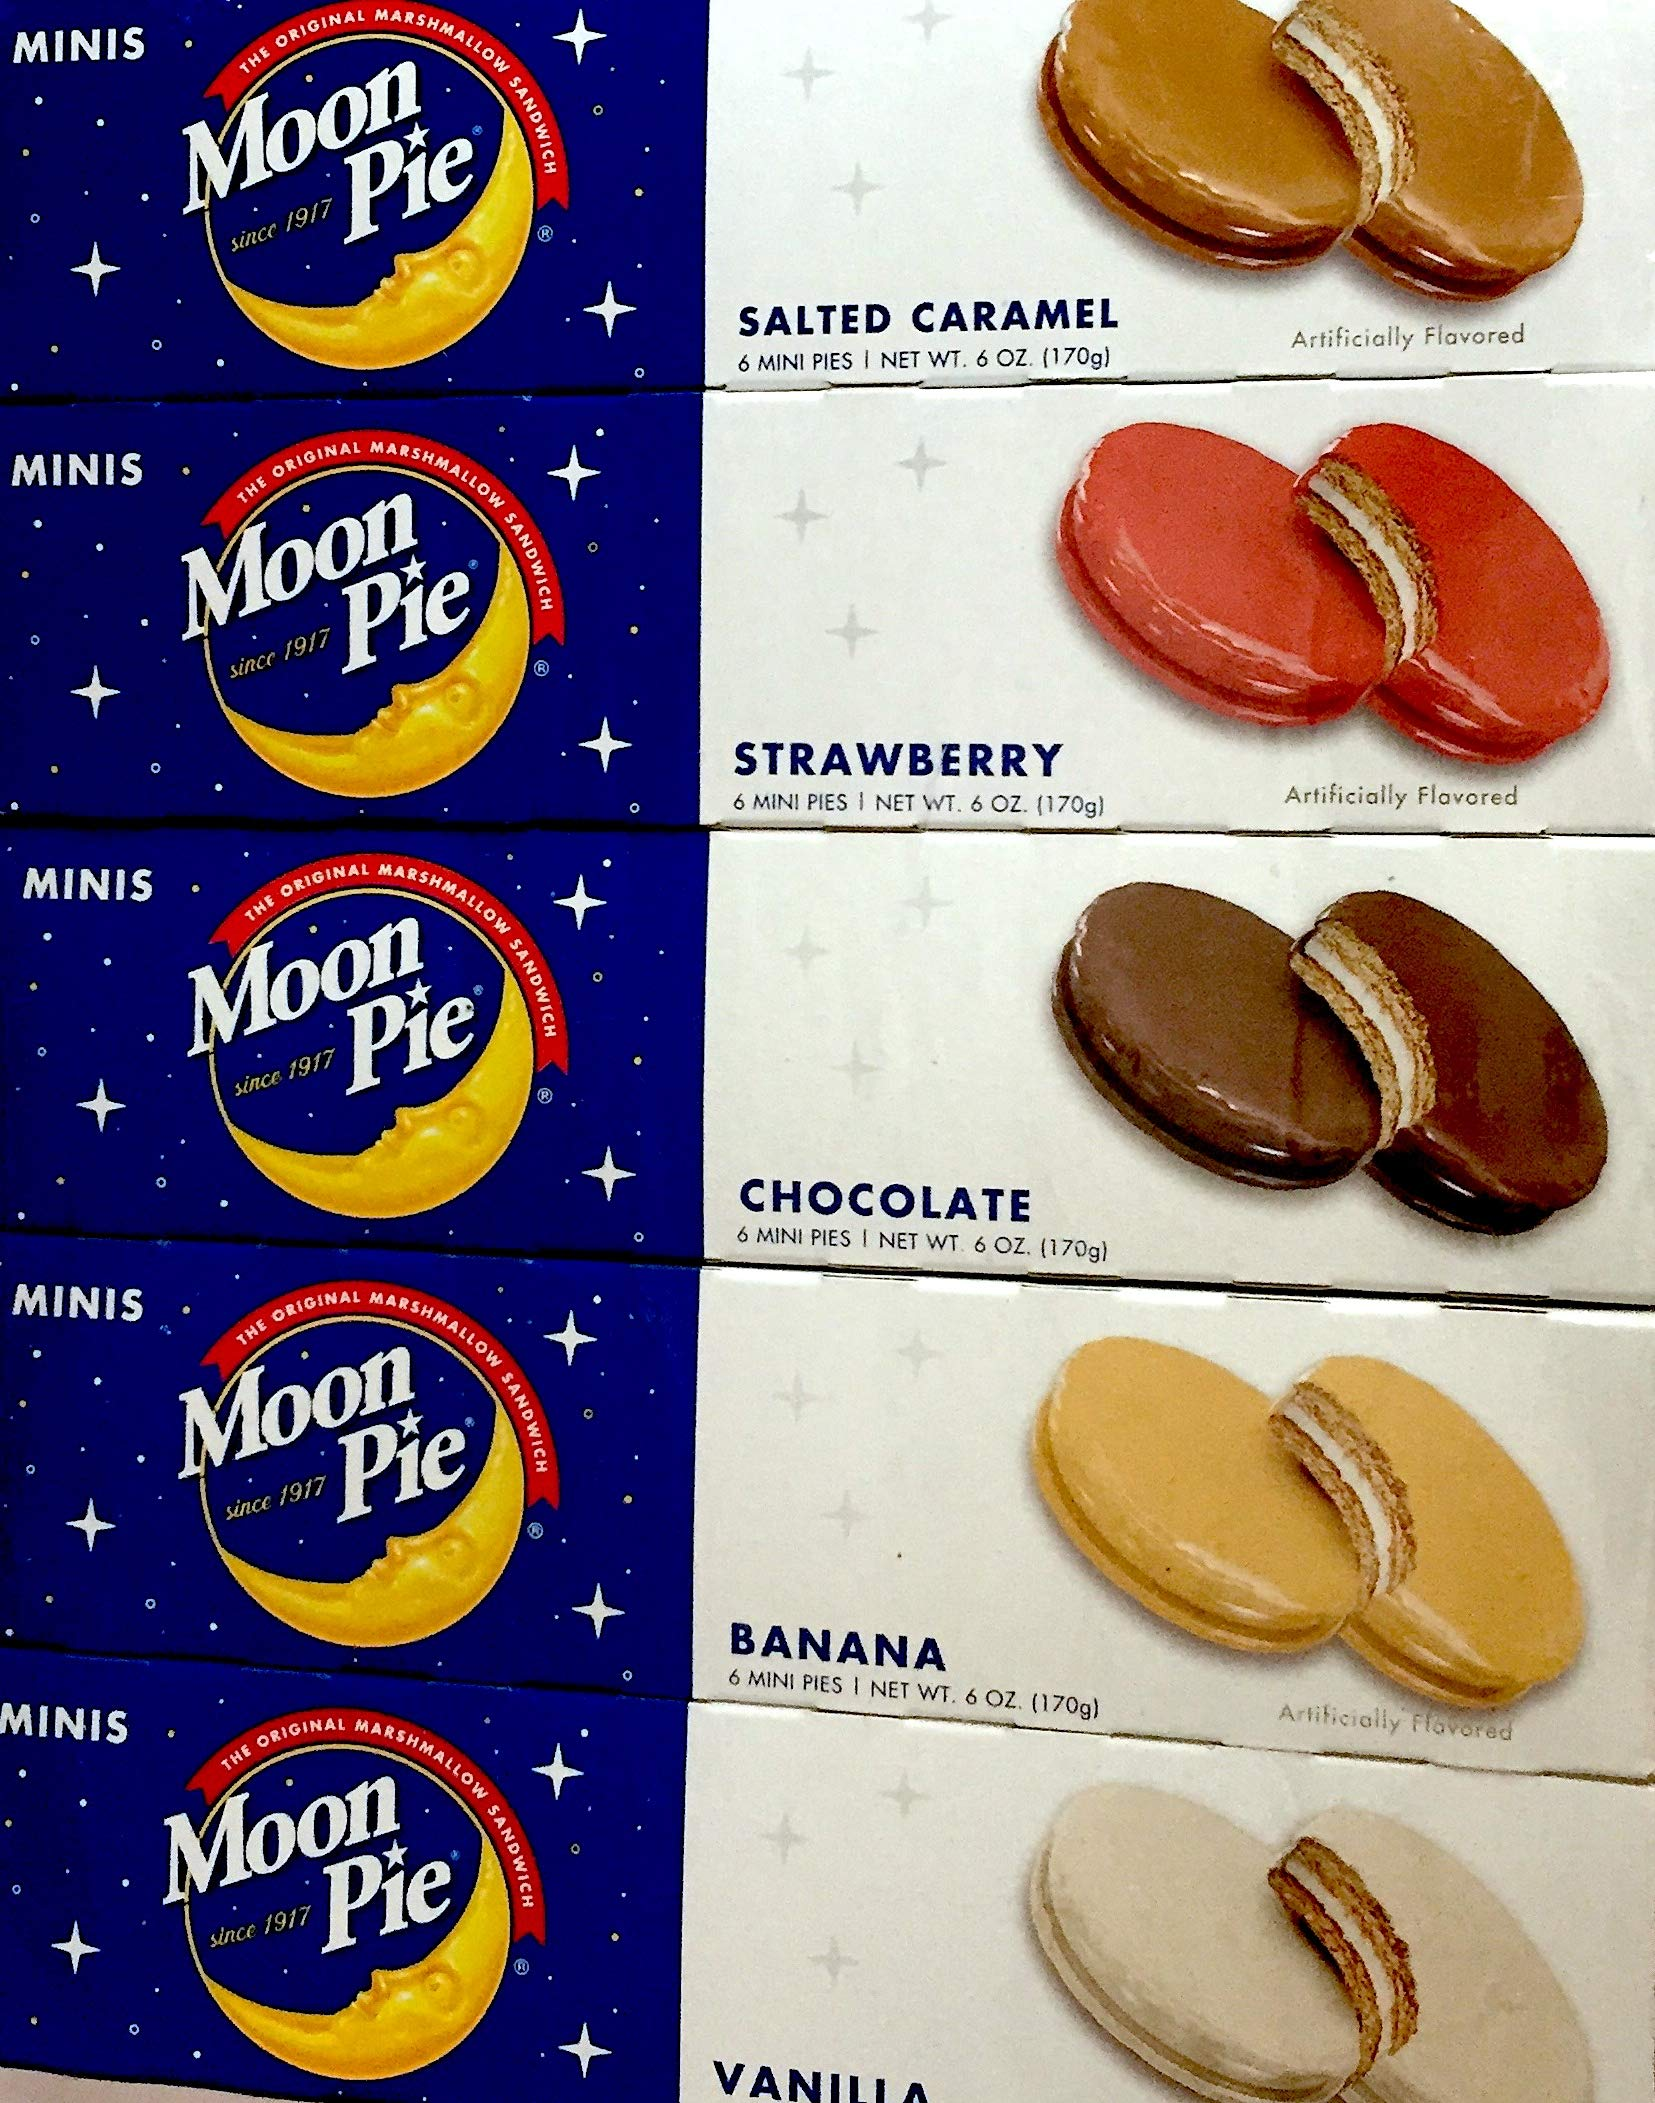 Moon Pie's- Complete Variety Pack - All 5 Flavors! 5 Boxes of Mini's- 1 Salted Caramel - 1 Chocolate - 1 Strawberry - 1 Banana - 1 Vanilla 6 pies per box, 30 pies total! by Online Wholesale Group